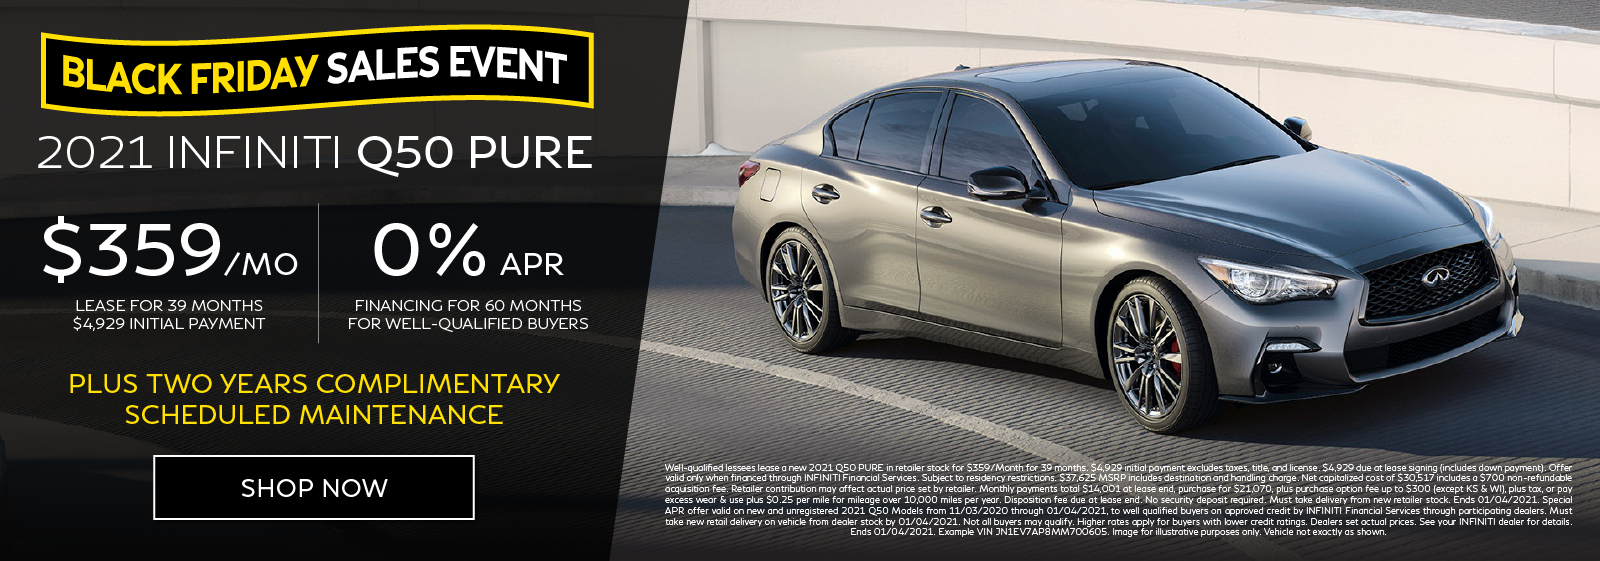 Well-qualified customers can lease a new 2021 Q50 PURE for $359 per month for 39 months OR get 0% APR financing for 60 months. Click to shop now.